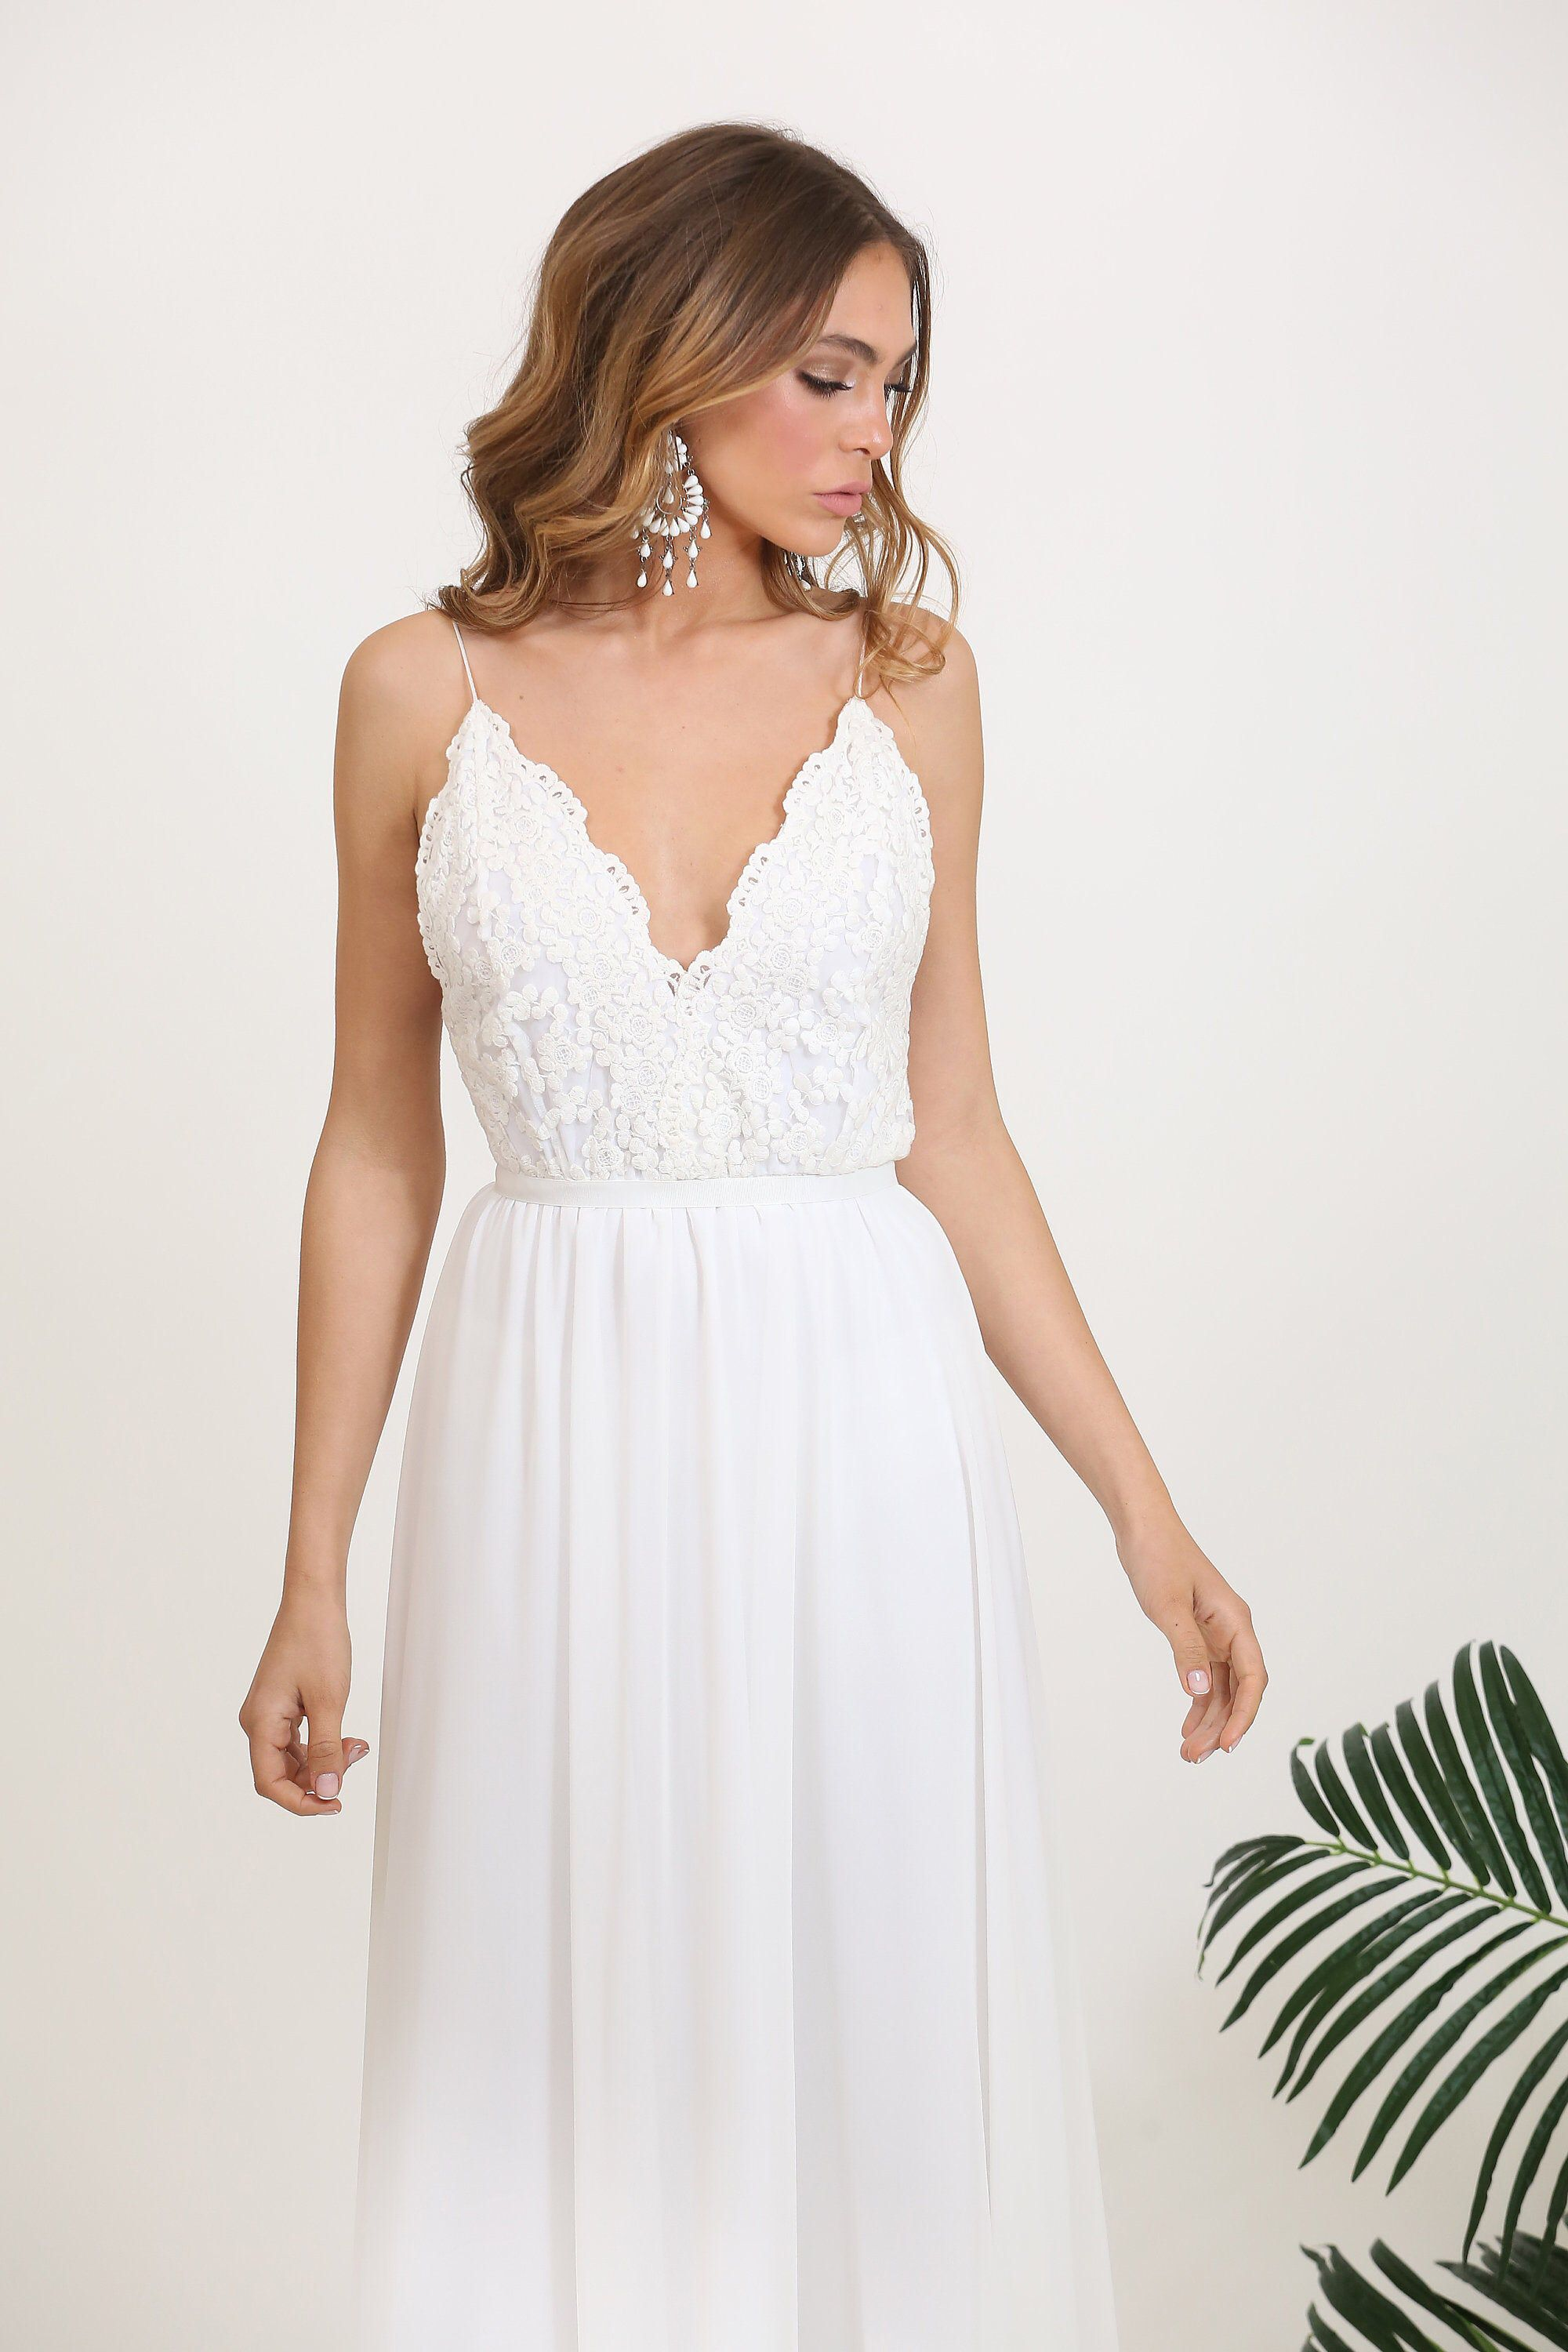 Wedding dress Lace top wedding gown Casual Fitted wedding